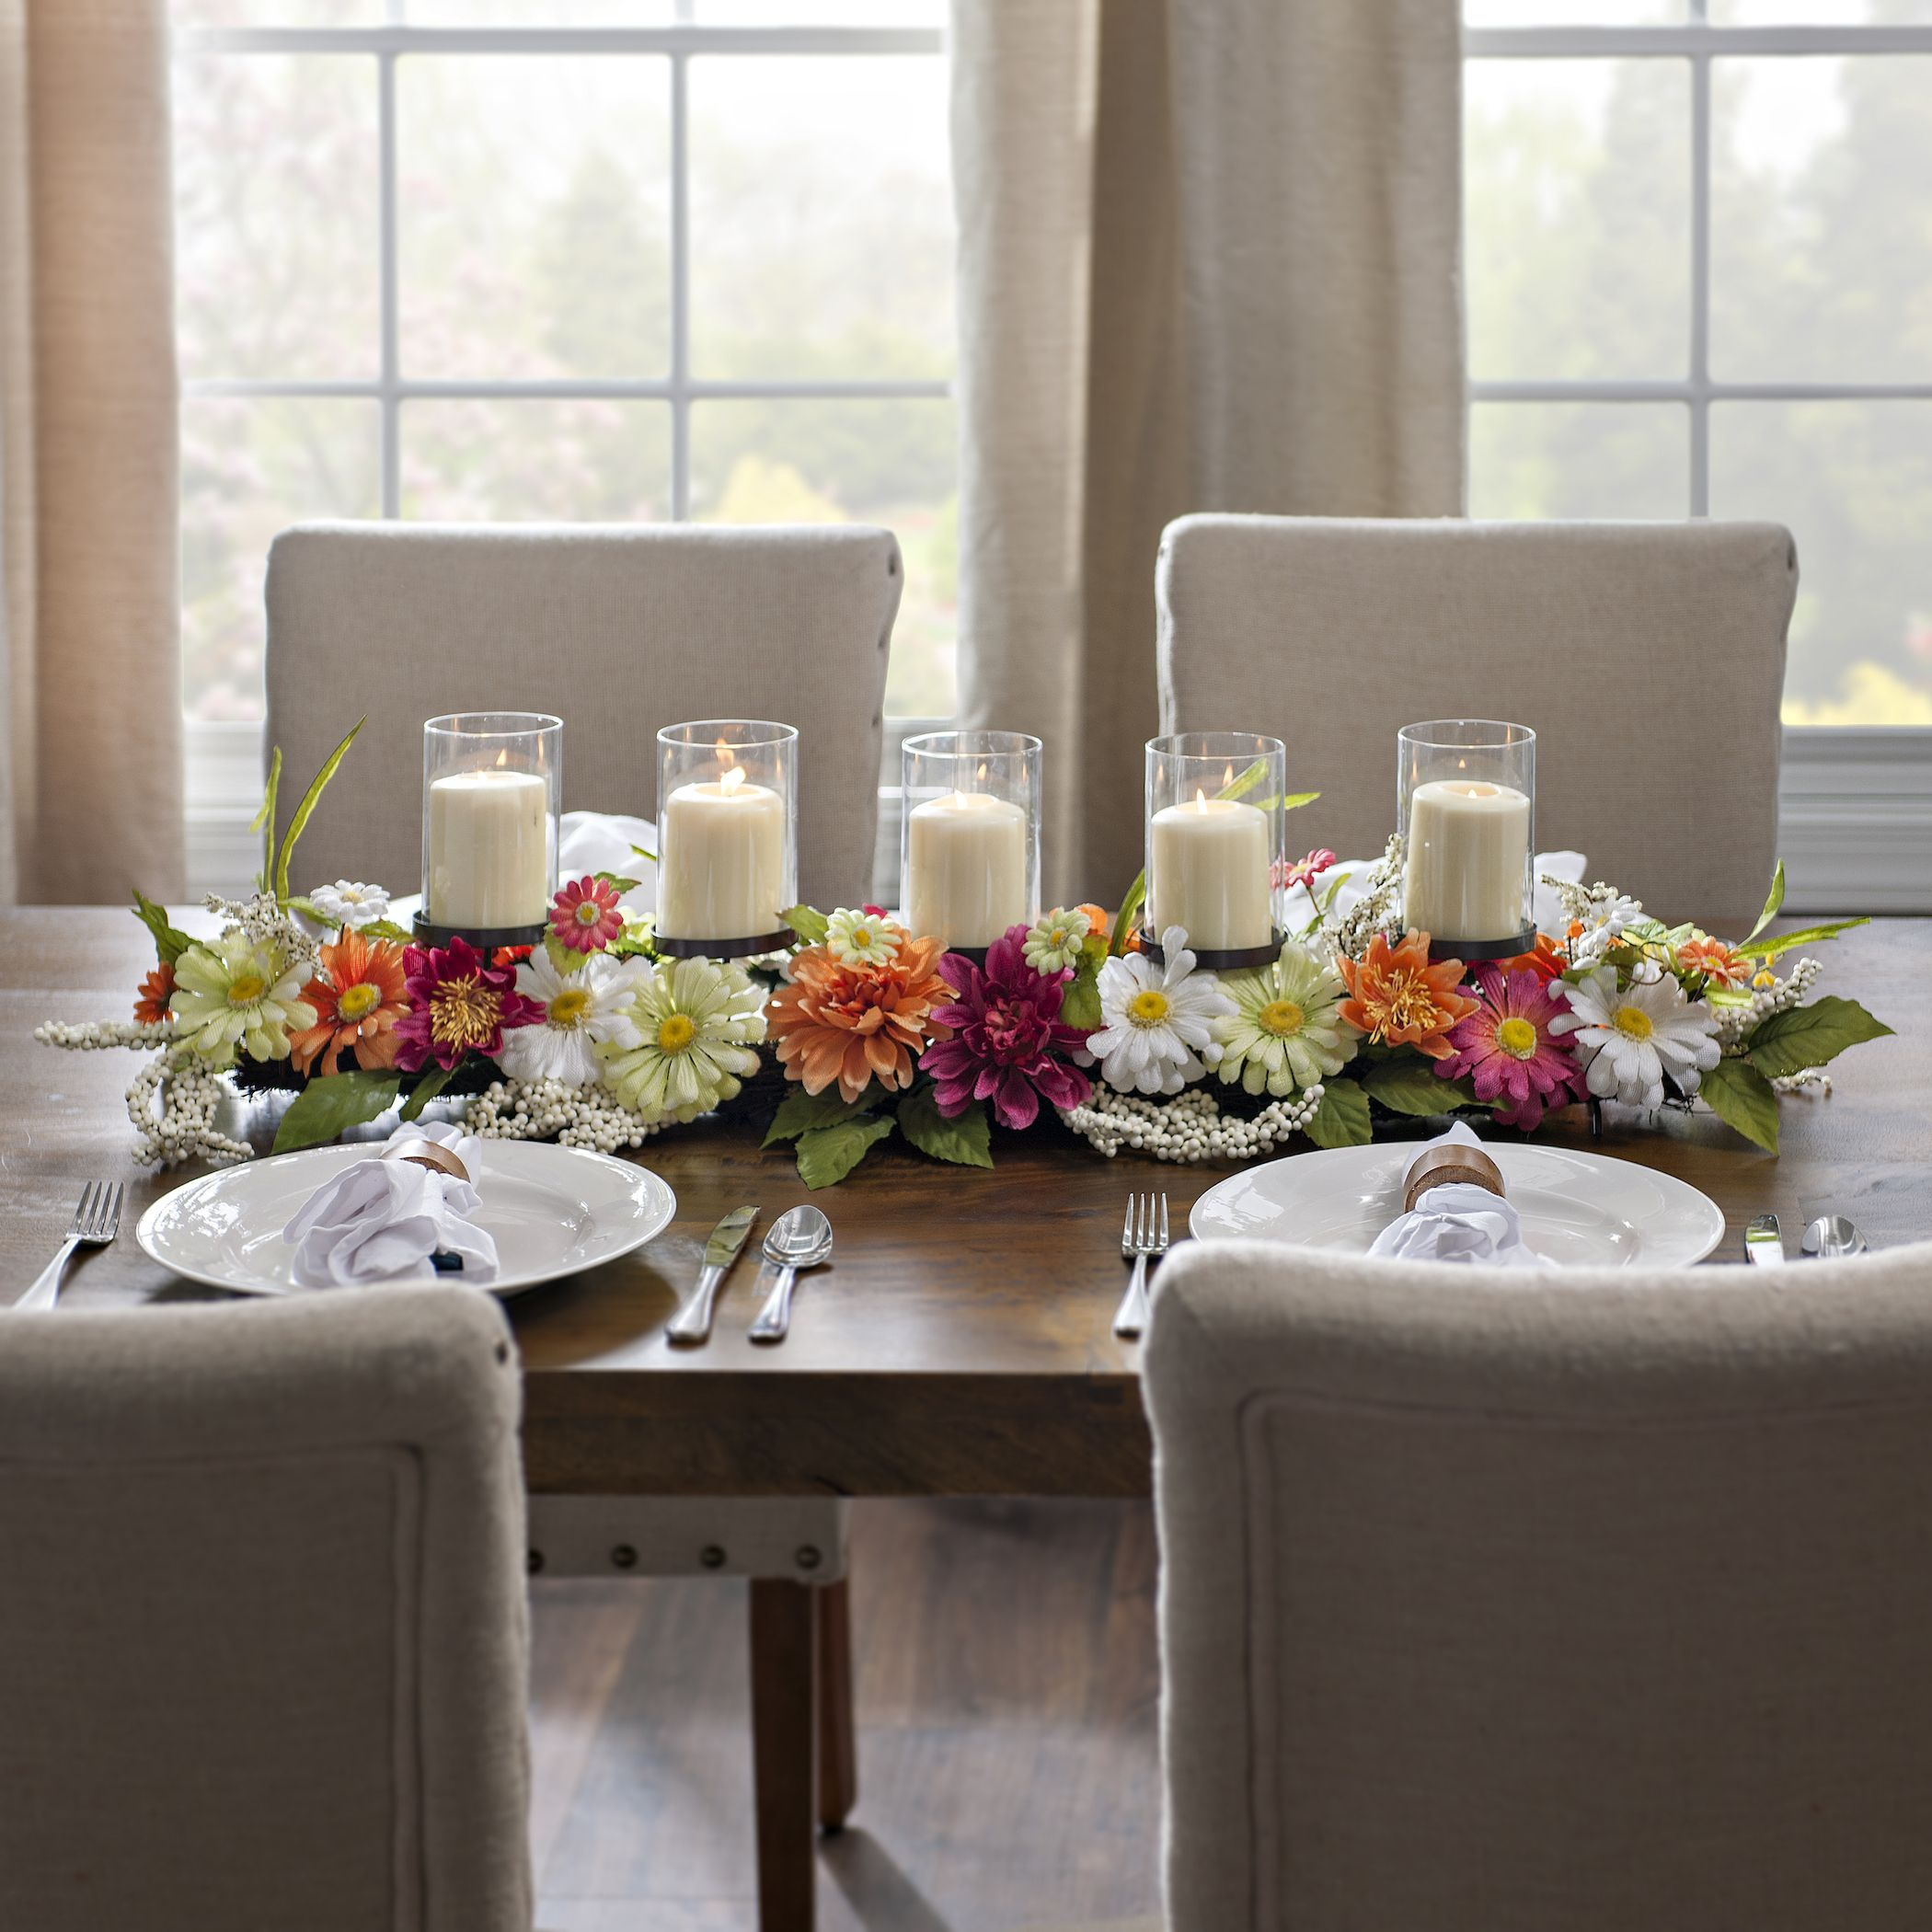 Set A Trendy Dinner Table With This Floral Centerpiece